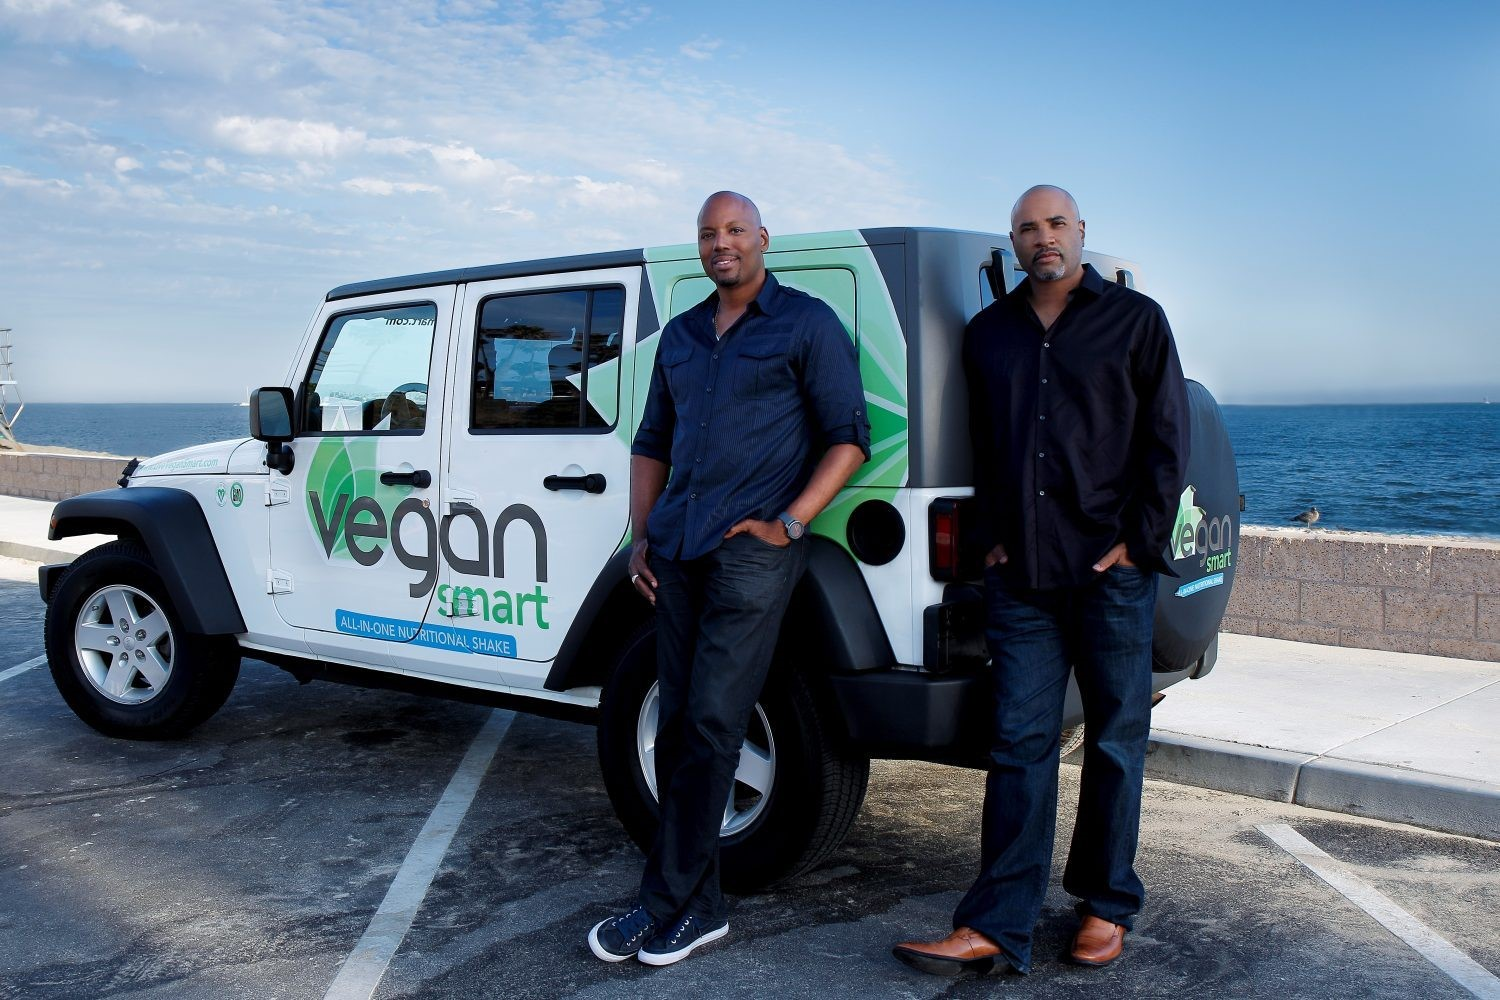 Kareem Cook and Claude Tellis stand in front of the promotional truck parked in a parking lot